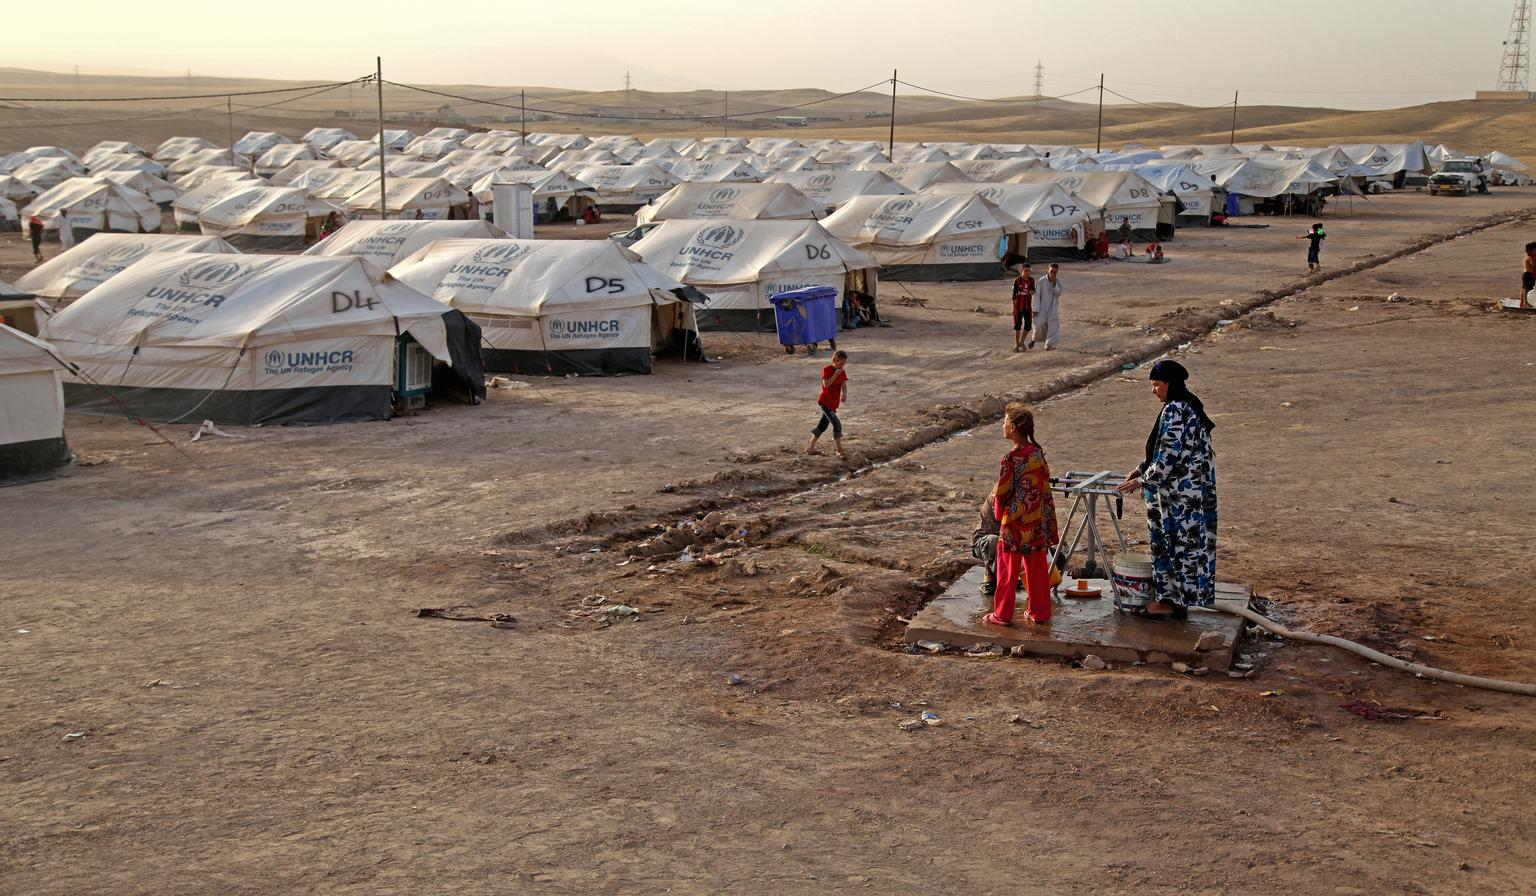 On 29 June 2014 in Iraq, displaced women fill containers at a water point, near rows of tents, in the Khazar transit camp in the northern-eastern city of Erbil. The camp received IDPs from Mosul but has since been disbanded due to fighting in the areas